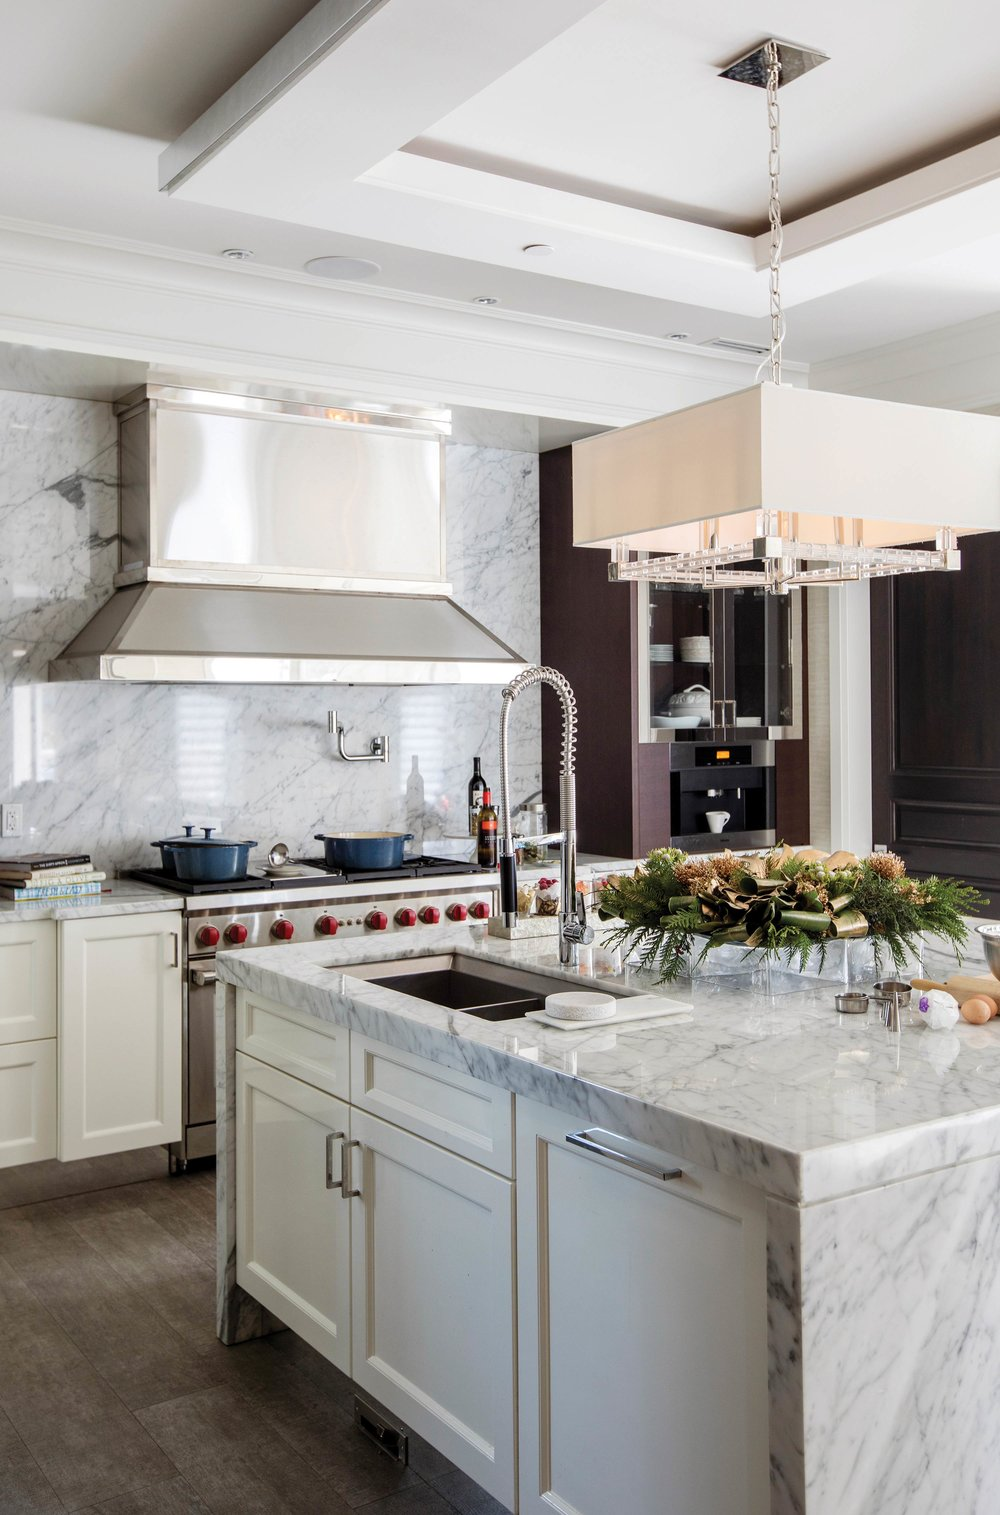 The white and grey marble kitchen interior is highlighted by a large kitchen island wreath, created from aromatic juniper and other evergreen leaves, dried Protea flowers, and wide-gold-ribbon accents. Courtesy of Granville Island Florist.